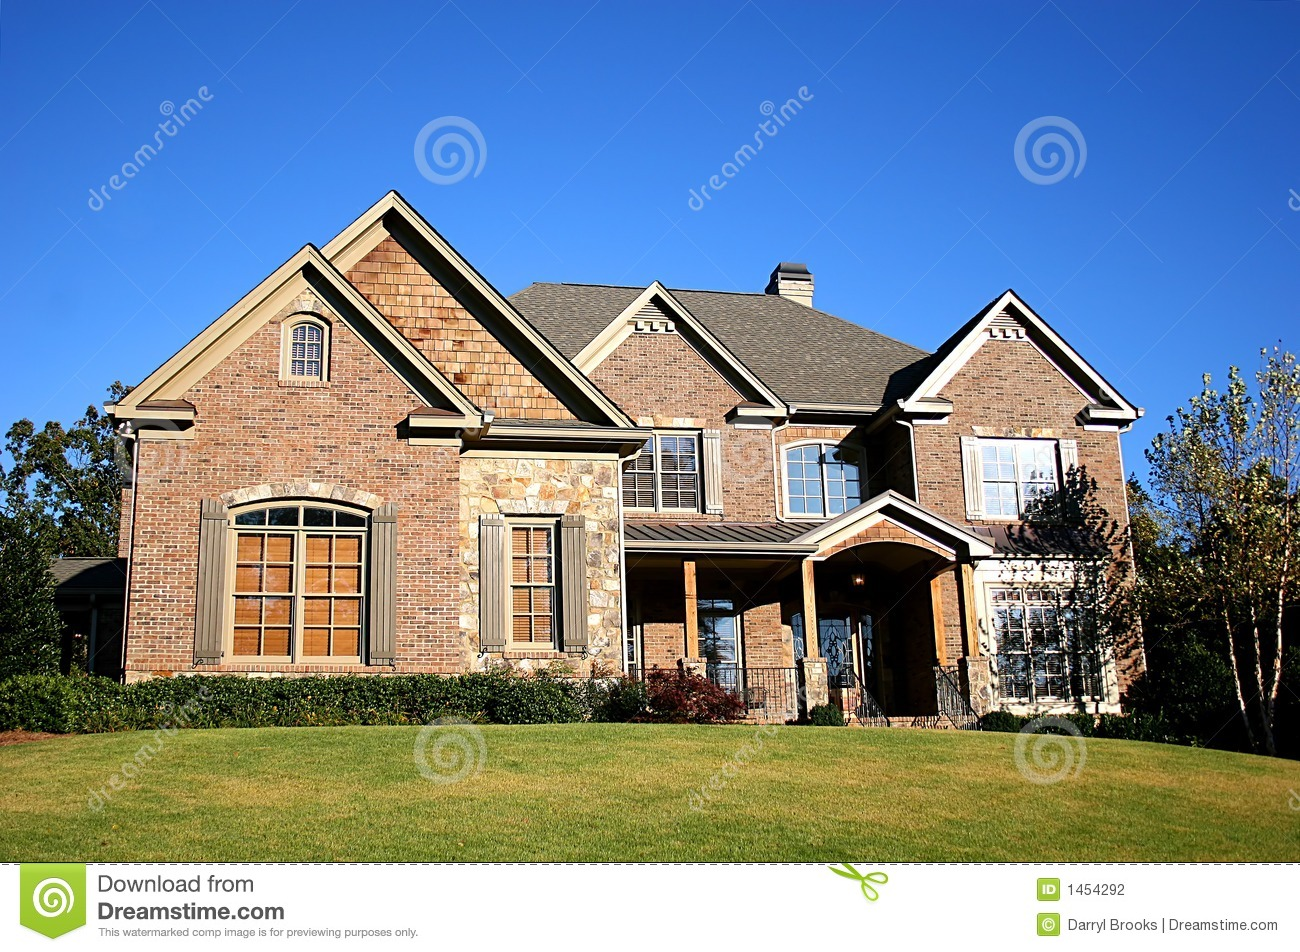 Nice house stock photography image 1454292 for Nice house photo